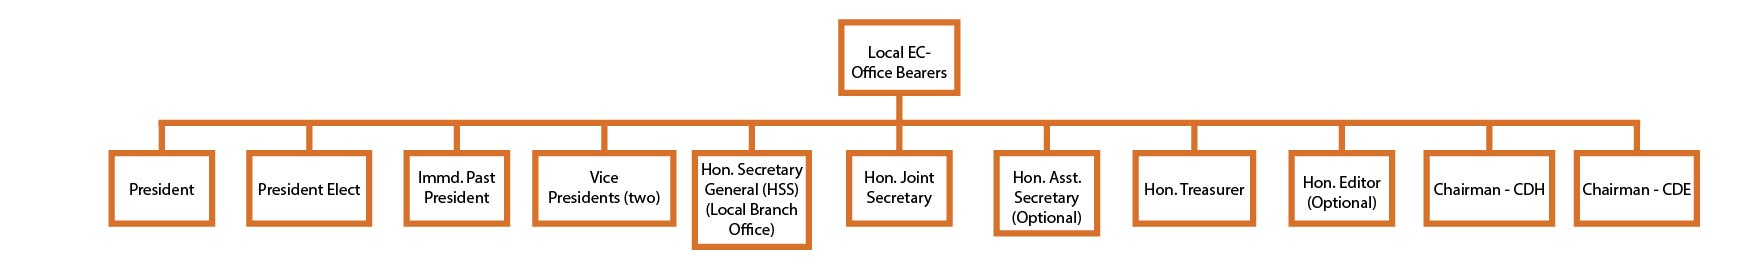 Local Executive Council Office Bearers